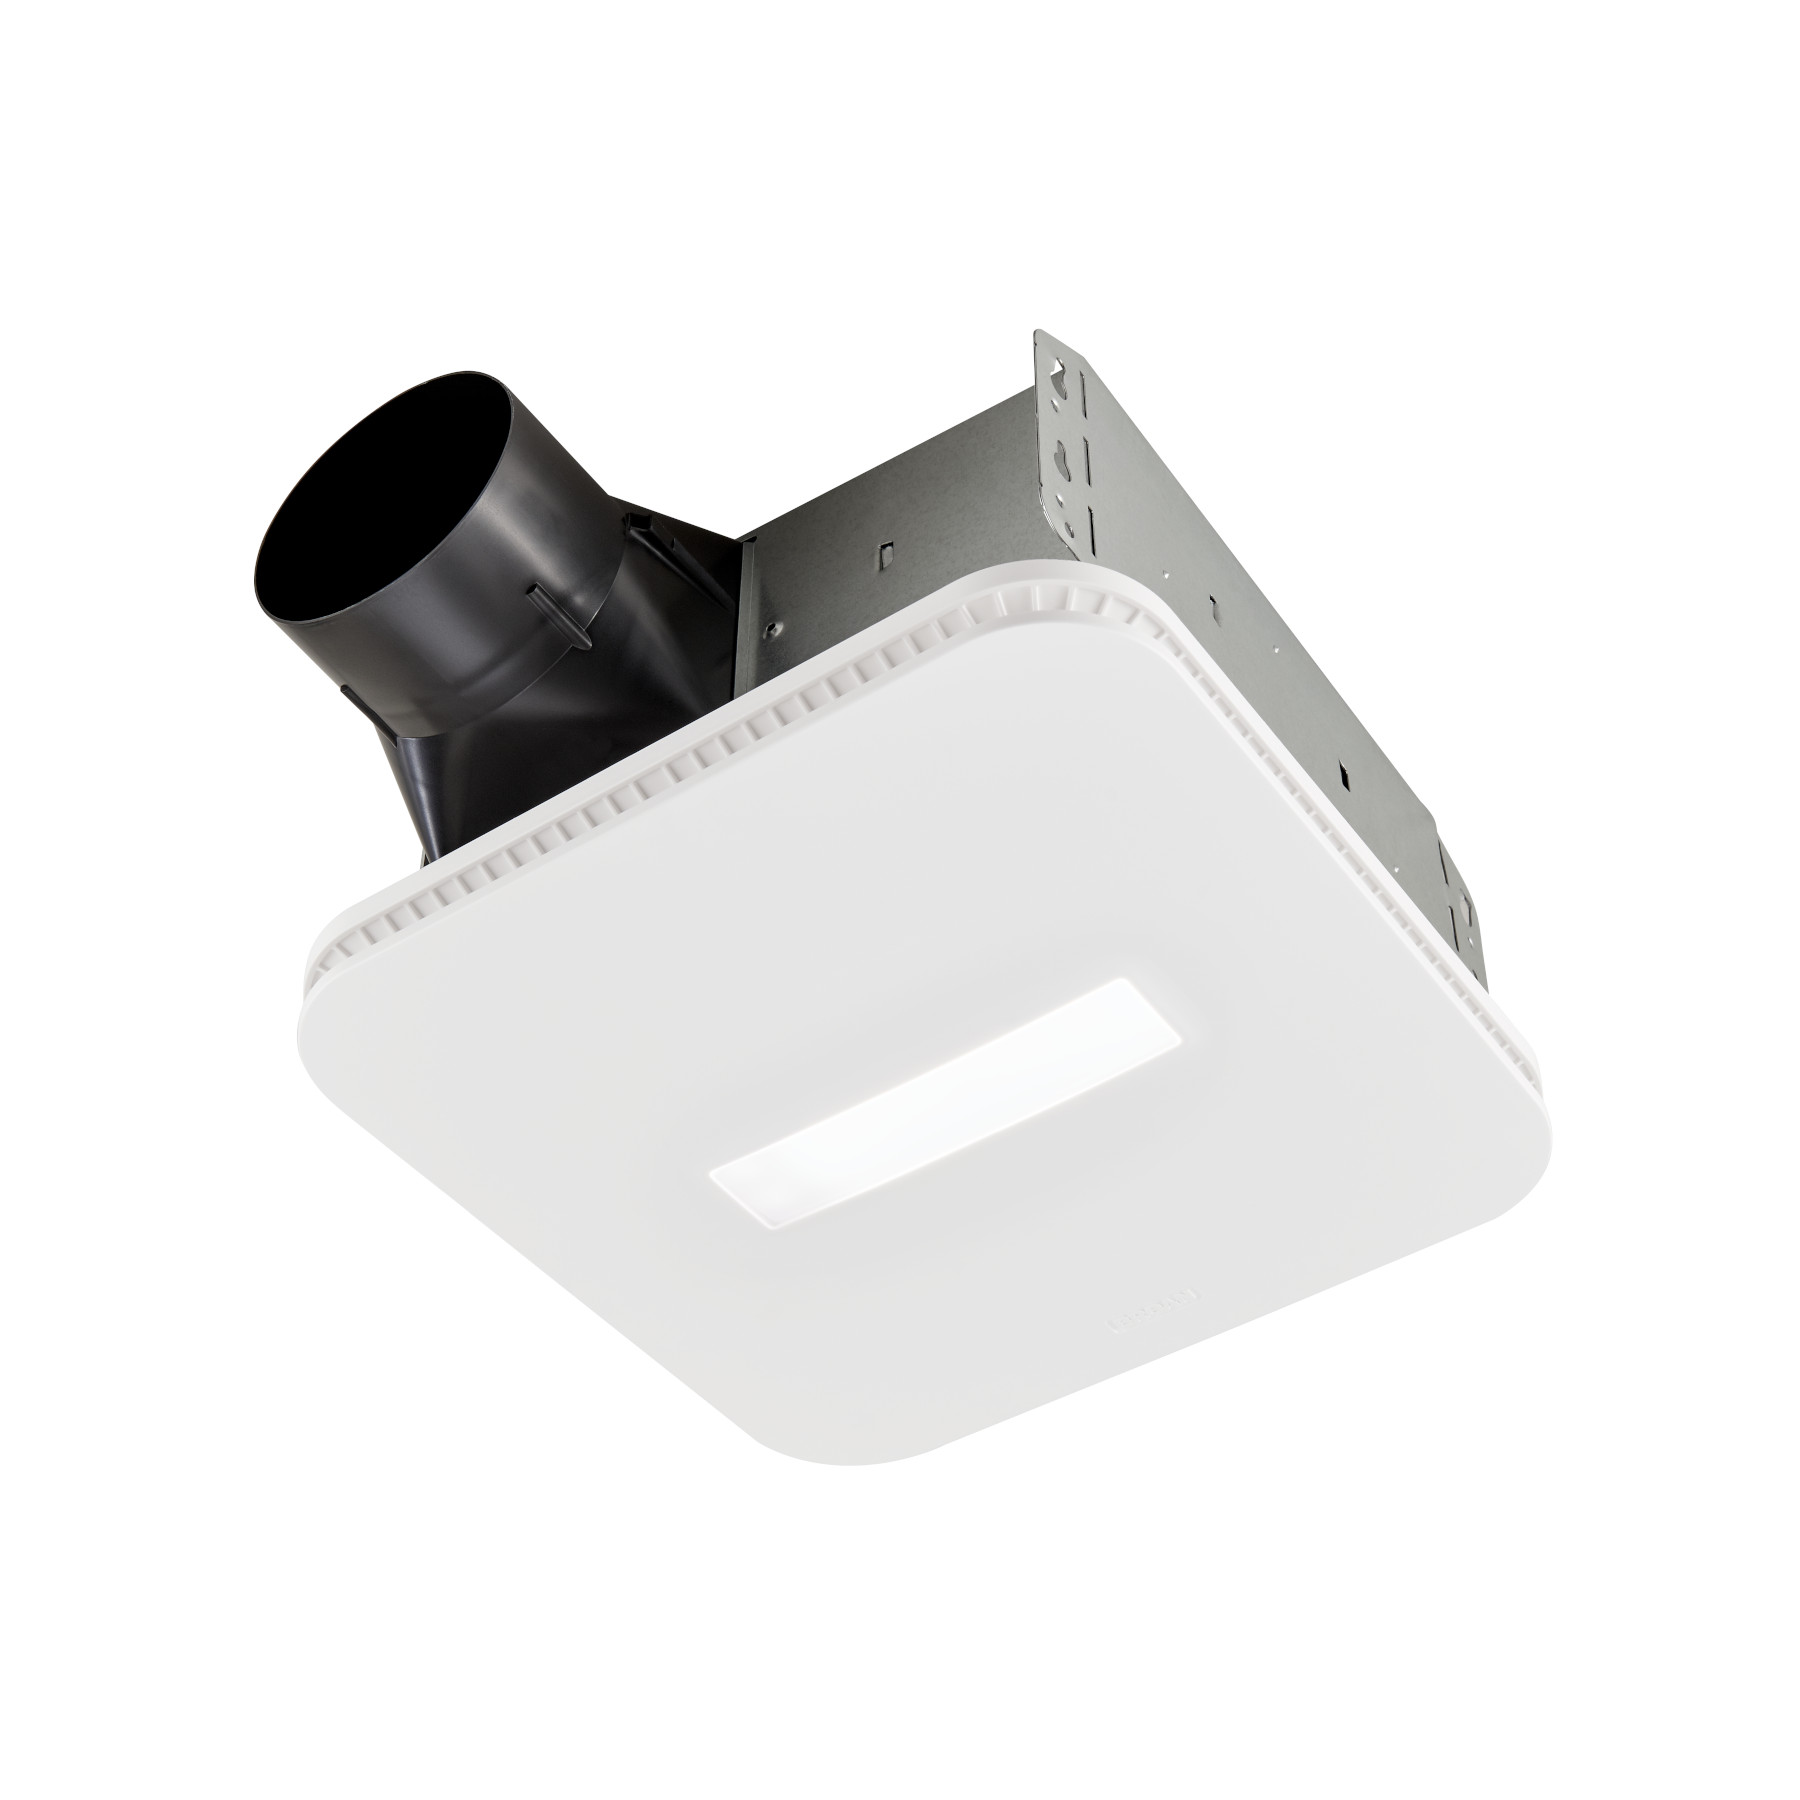 110 CFM Bathroom Exhaust Fan with LED Lighted CleanCover™ Grille, ENERGY STAR